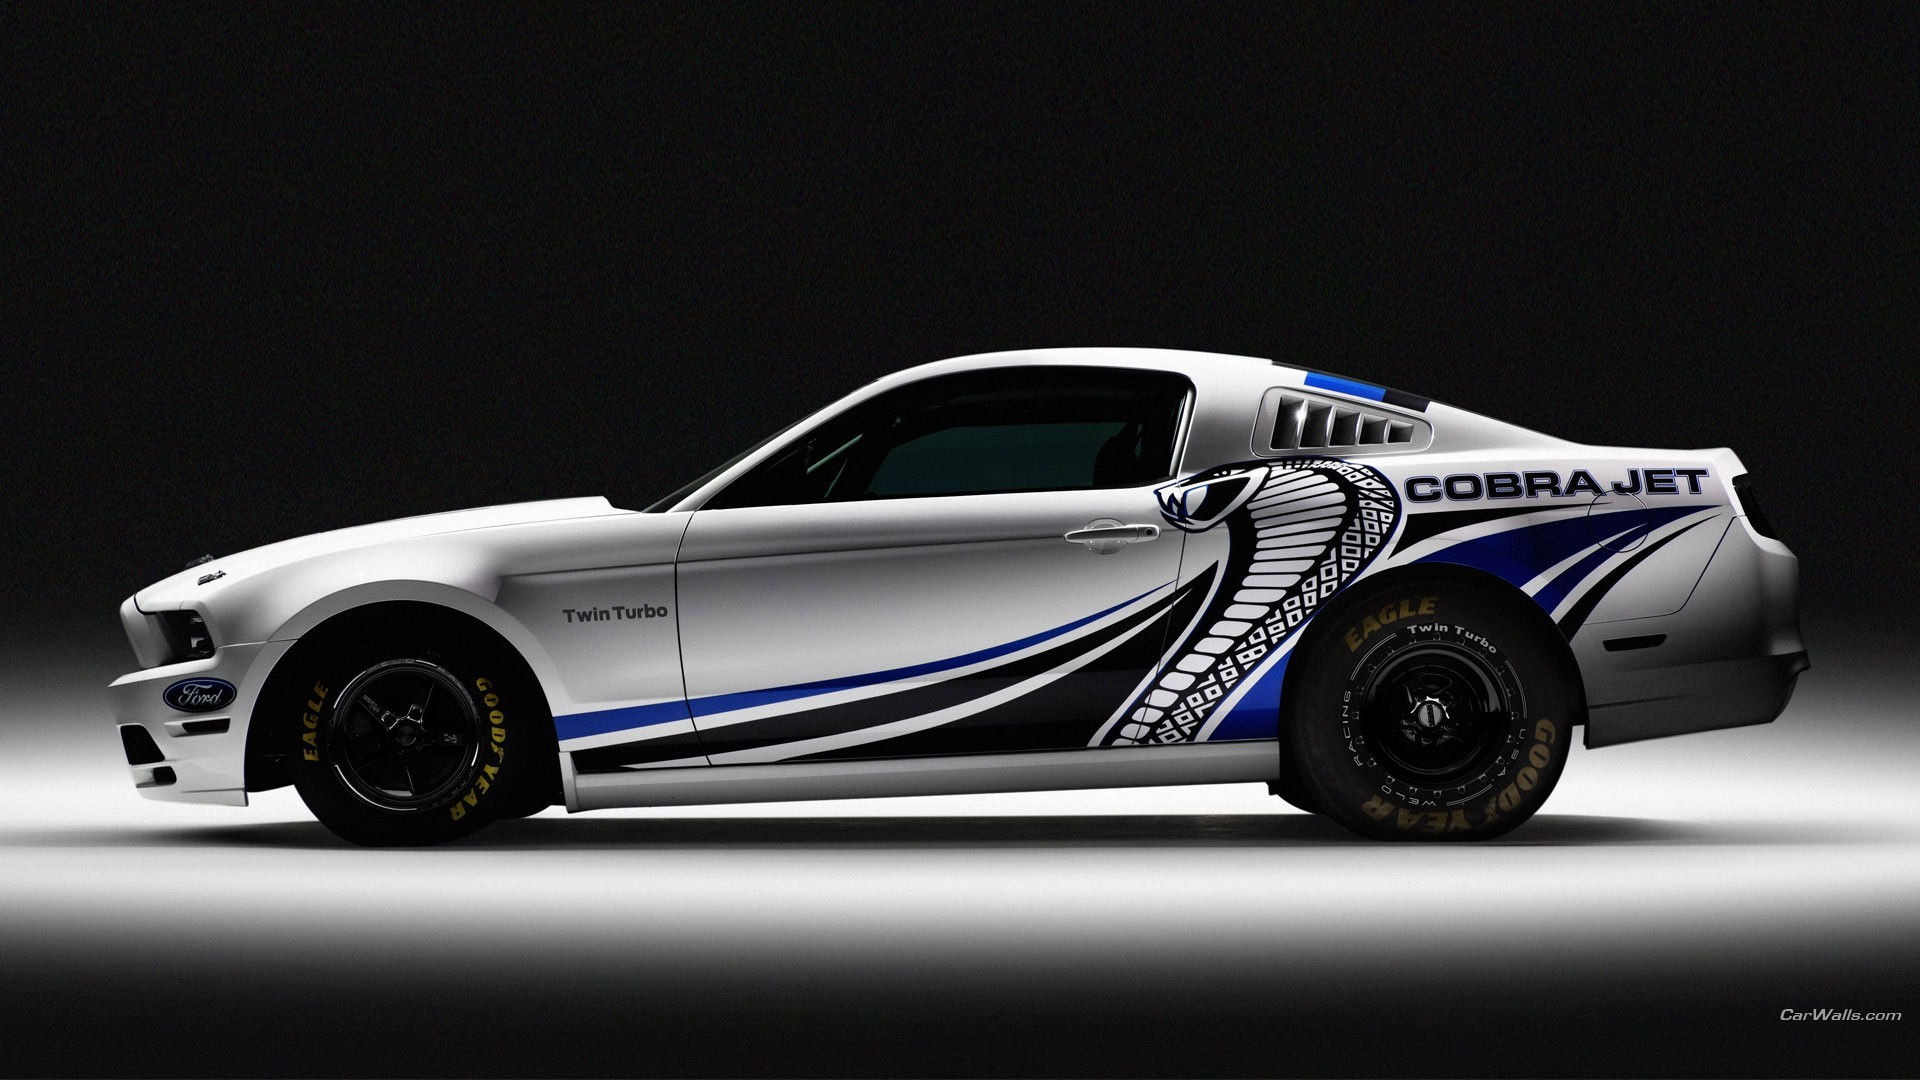 Cars Concept Cars Ford Mustang Shelby Mustang Twin Turbo Tuned Ford Mustang  Cobra Jets Cobra Jet Wallpaper 224584 Wallpaperup